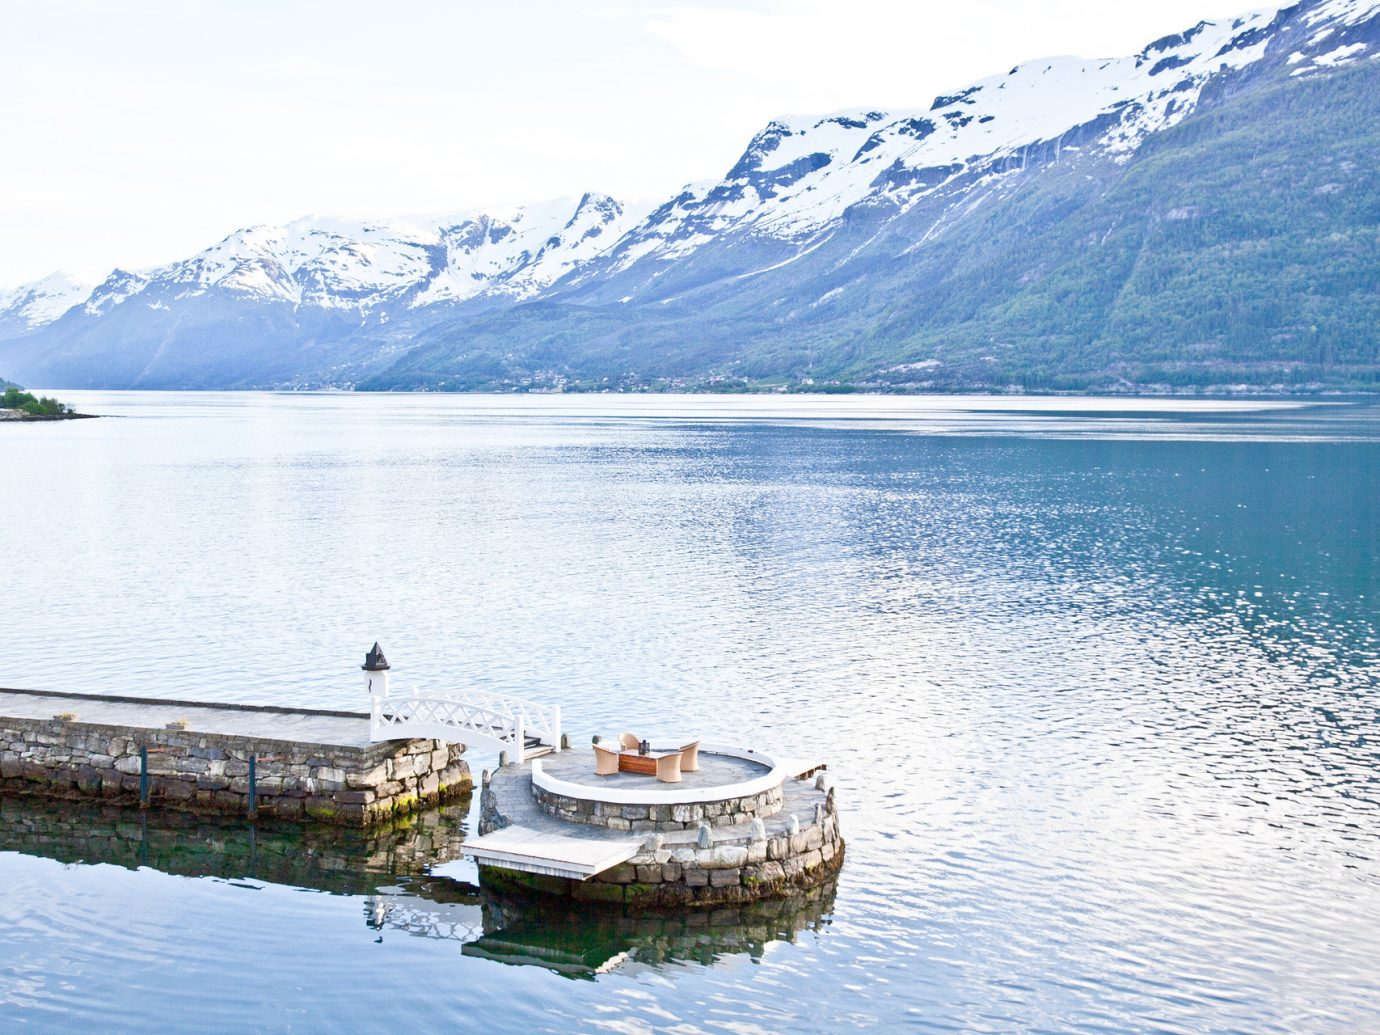 dock Mountains Nature Outdoors River Scenic views snow capped Mountains Trip Ideas view viewpoint water mountain Boat outdoor Lake fjord vehicle reflection loch reservoir Sea bay mountain range glacial landform distance